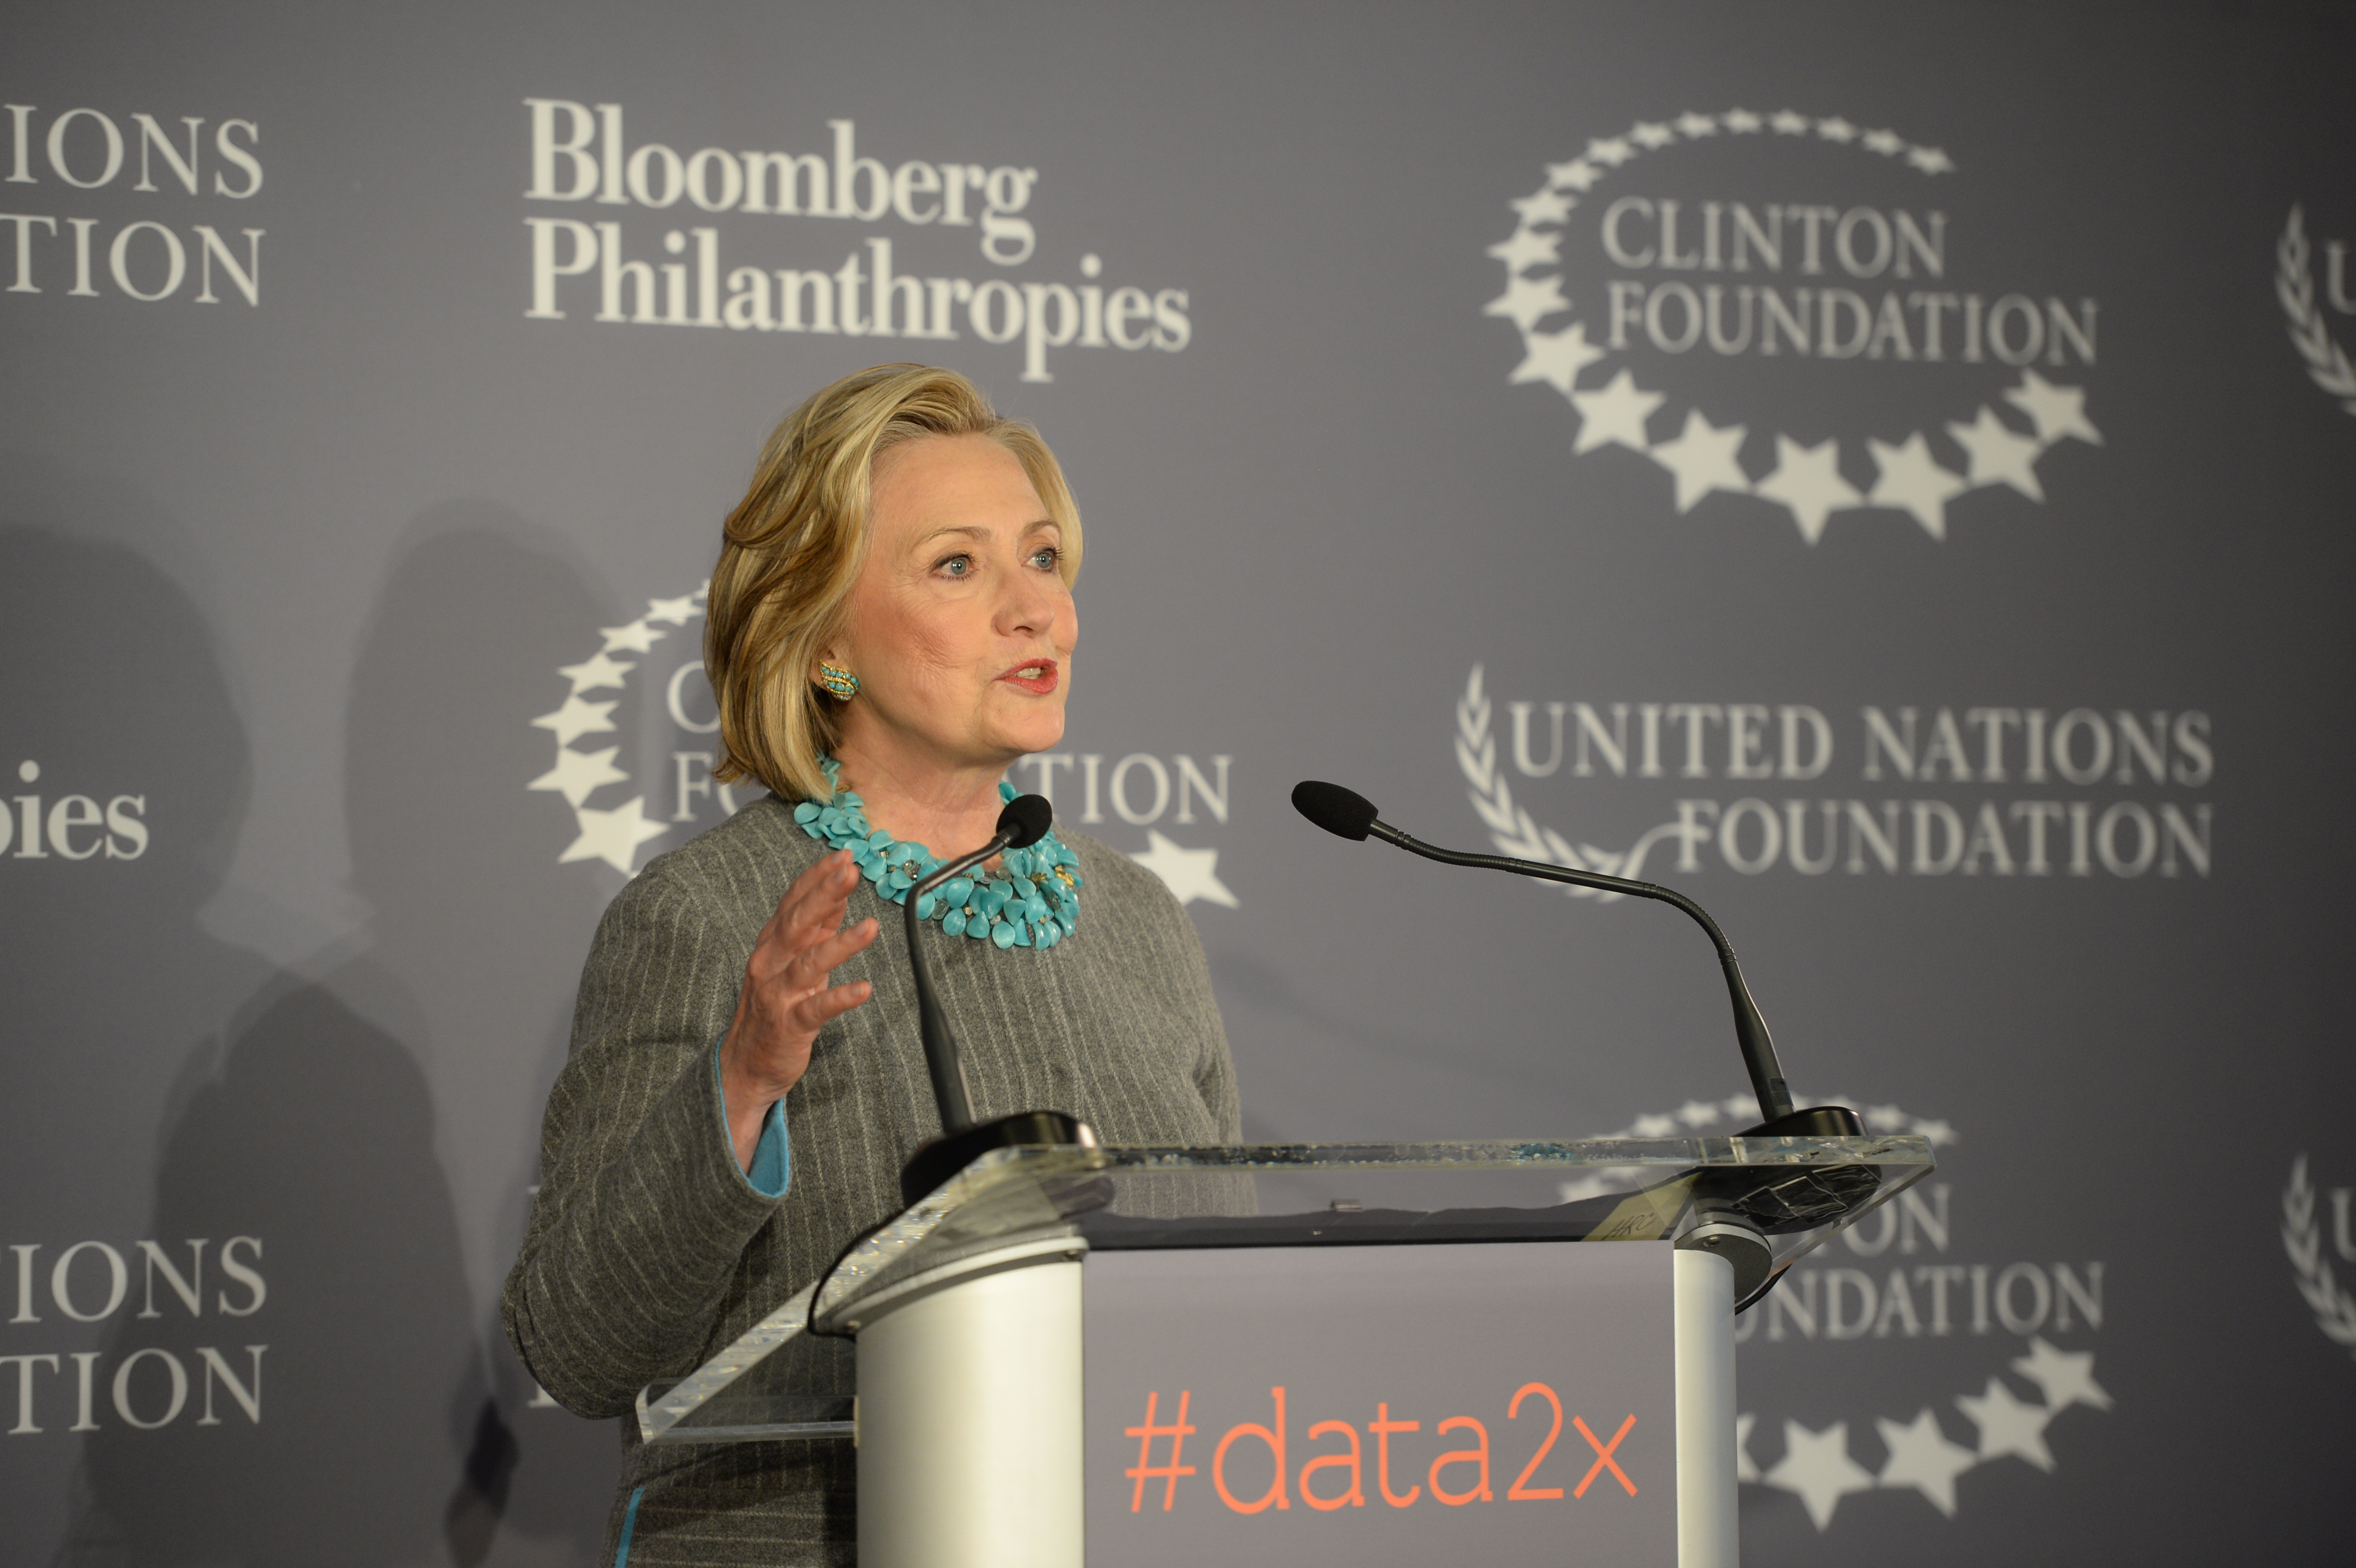 Hillary Clinton speaks at the Bloomberg Foundation's data2X event at the foundation headquarters in Manhattan, December 15th, 2014.